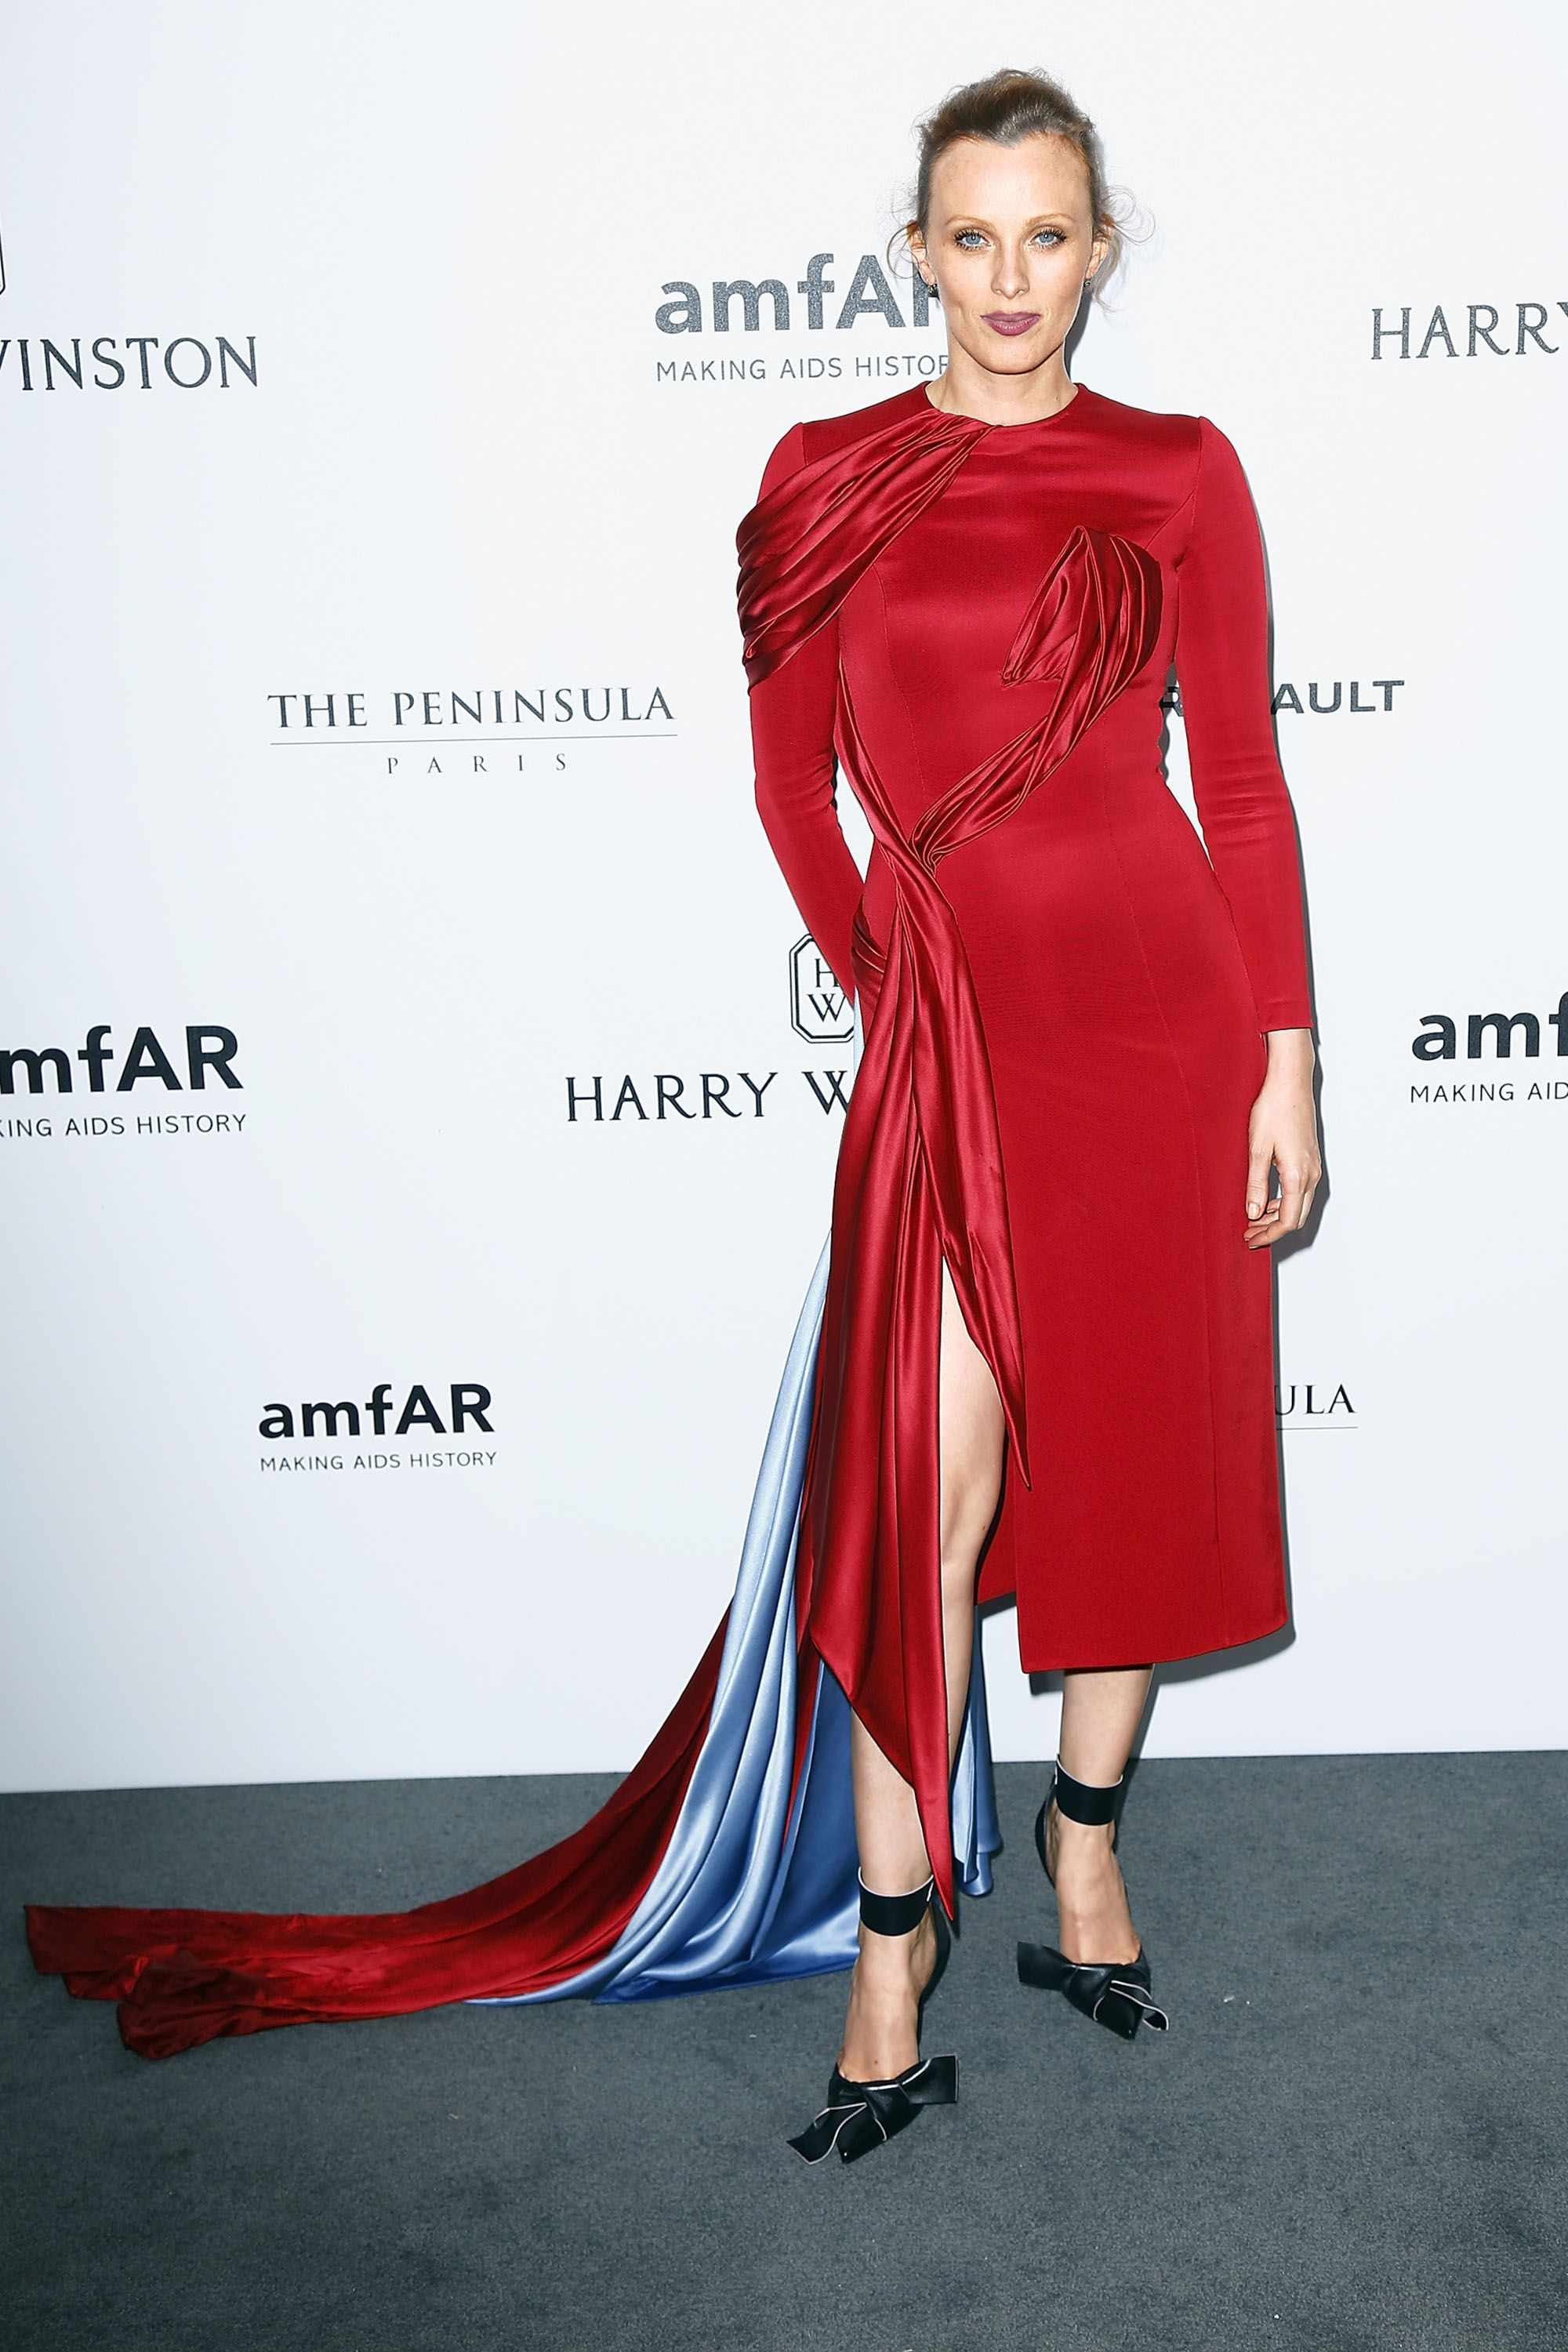 150 Fashion Icons From All Over the World - Most Stylish Female